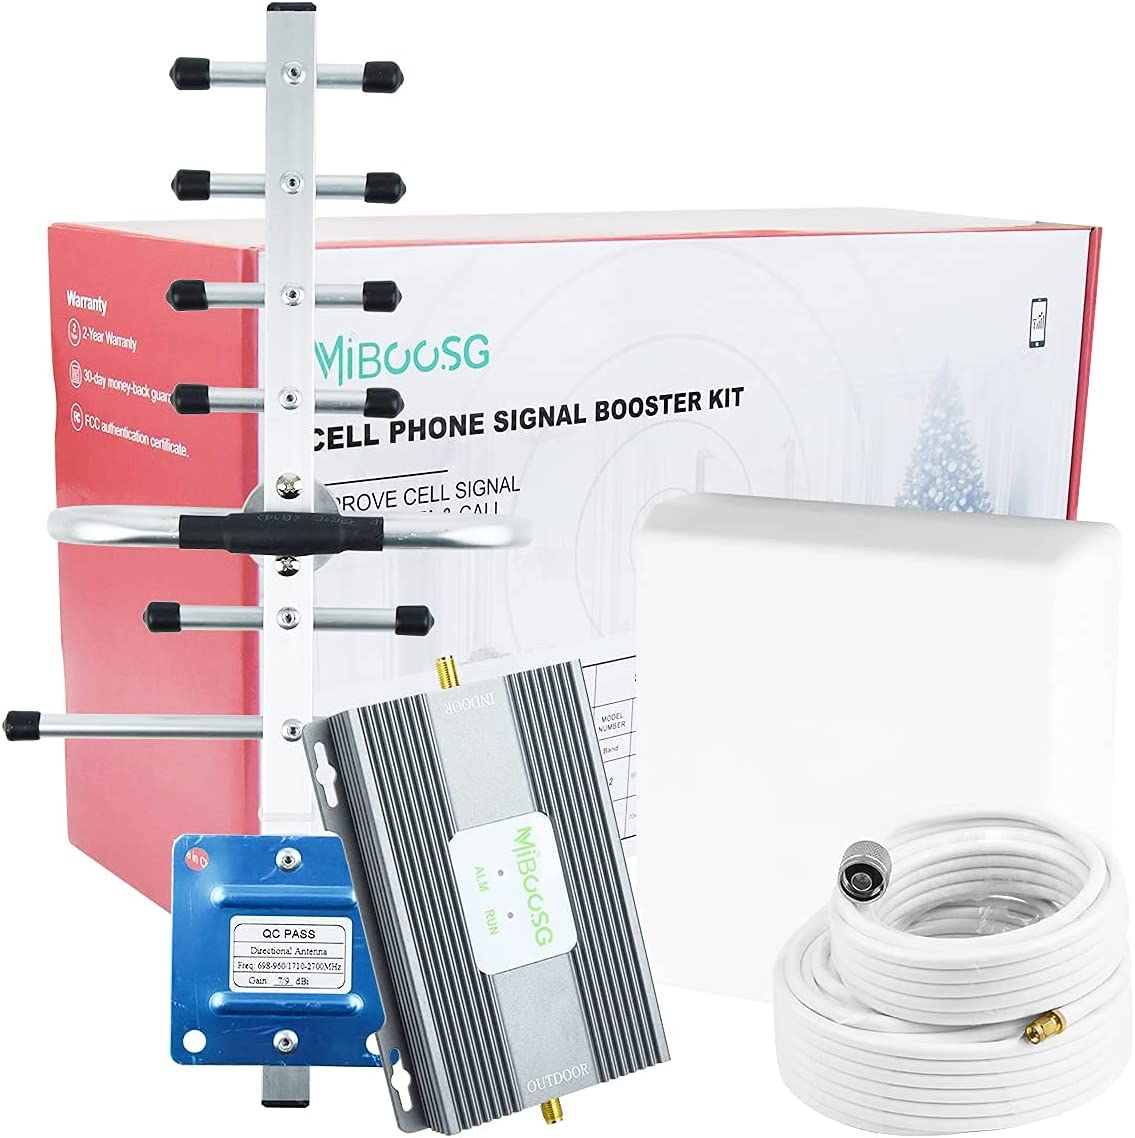 Cell Phone Signal Booster AT&T Cell Booster Home 4G LTE Band 12/17 T Mobile ATT Cell Phone Booster ATT Signal Booster Repeater for Home T-Mobile US Cellular 65dB Stop Dropped Calls for Rural Area